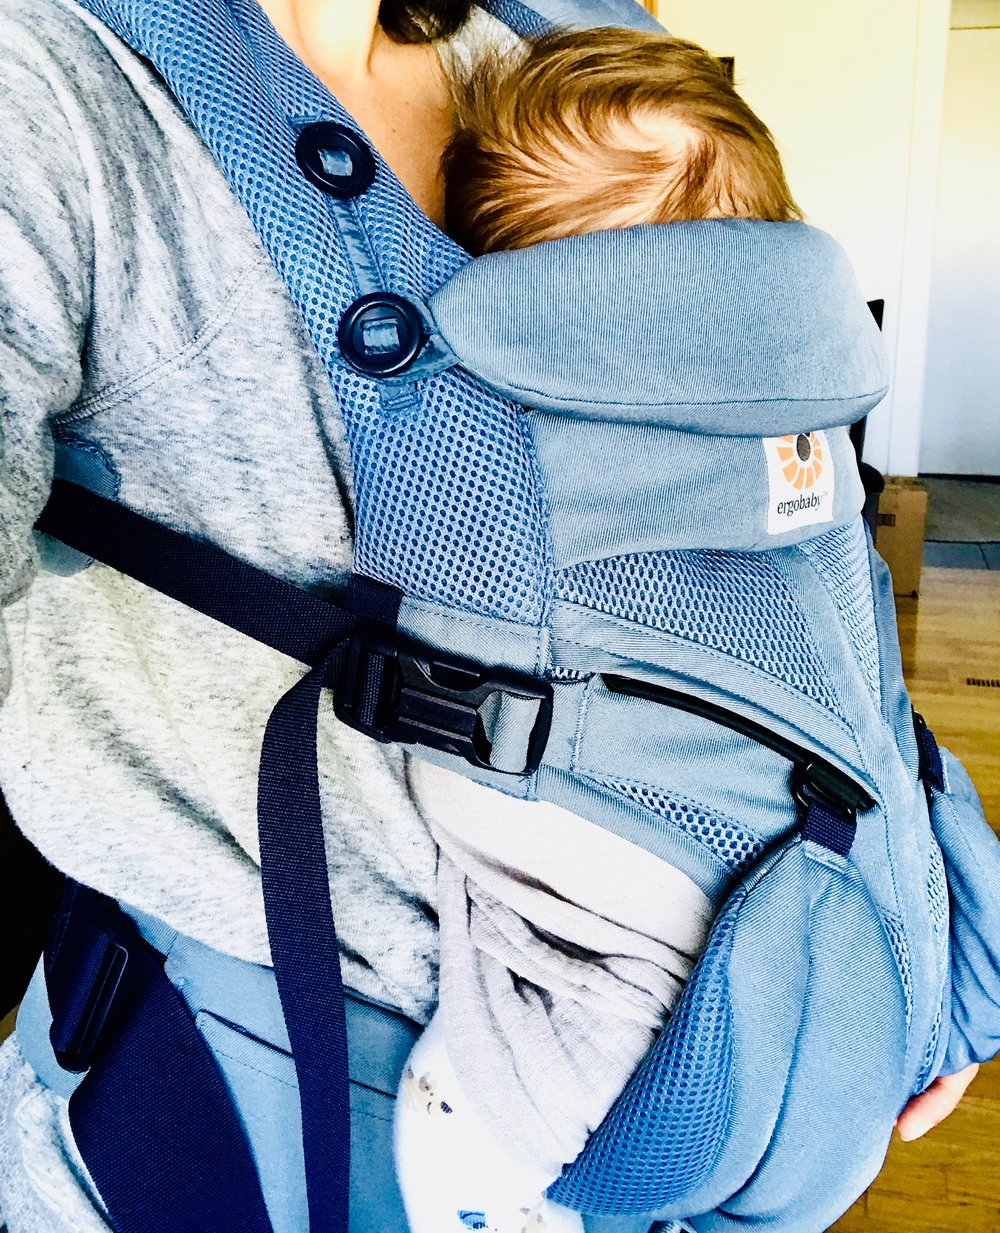 ergo baby carrier reviews and why you should get one. eco friendly, all natural, and ergonomically approved.